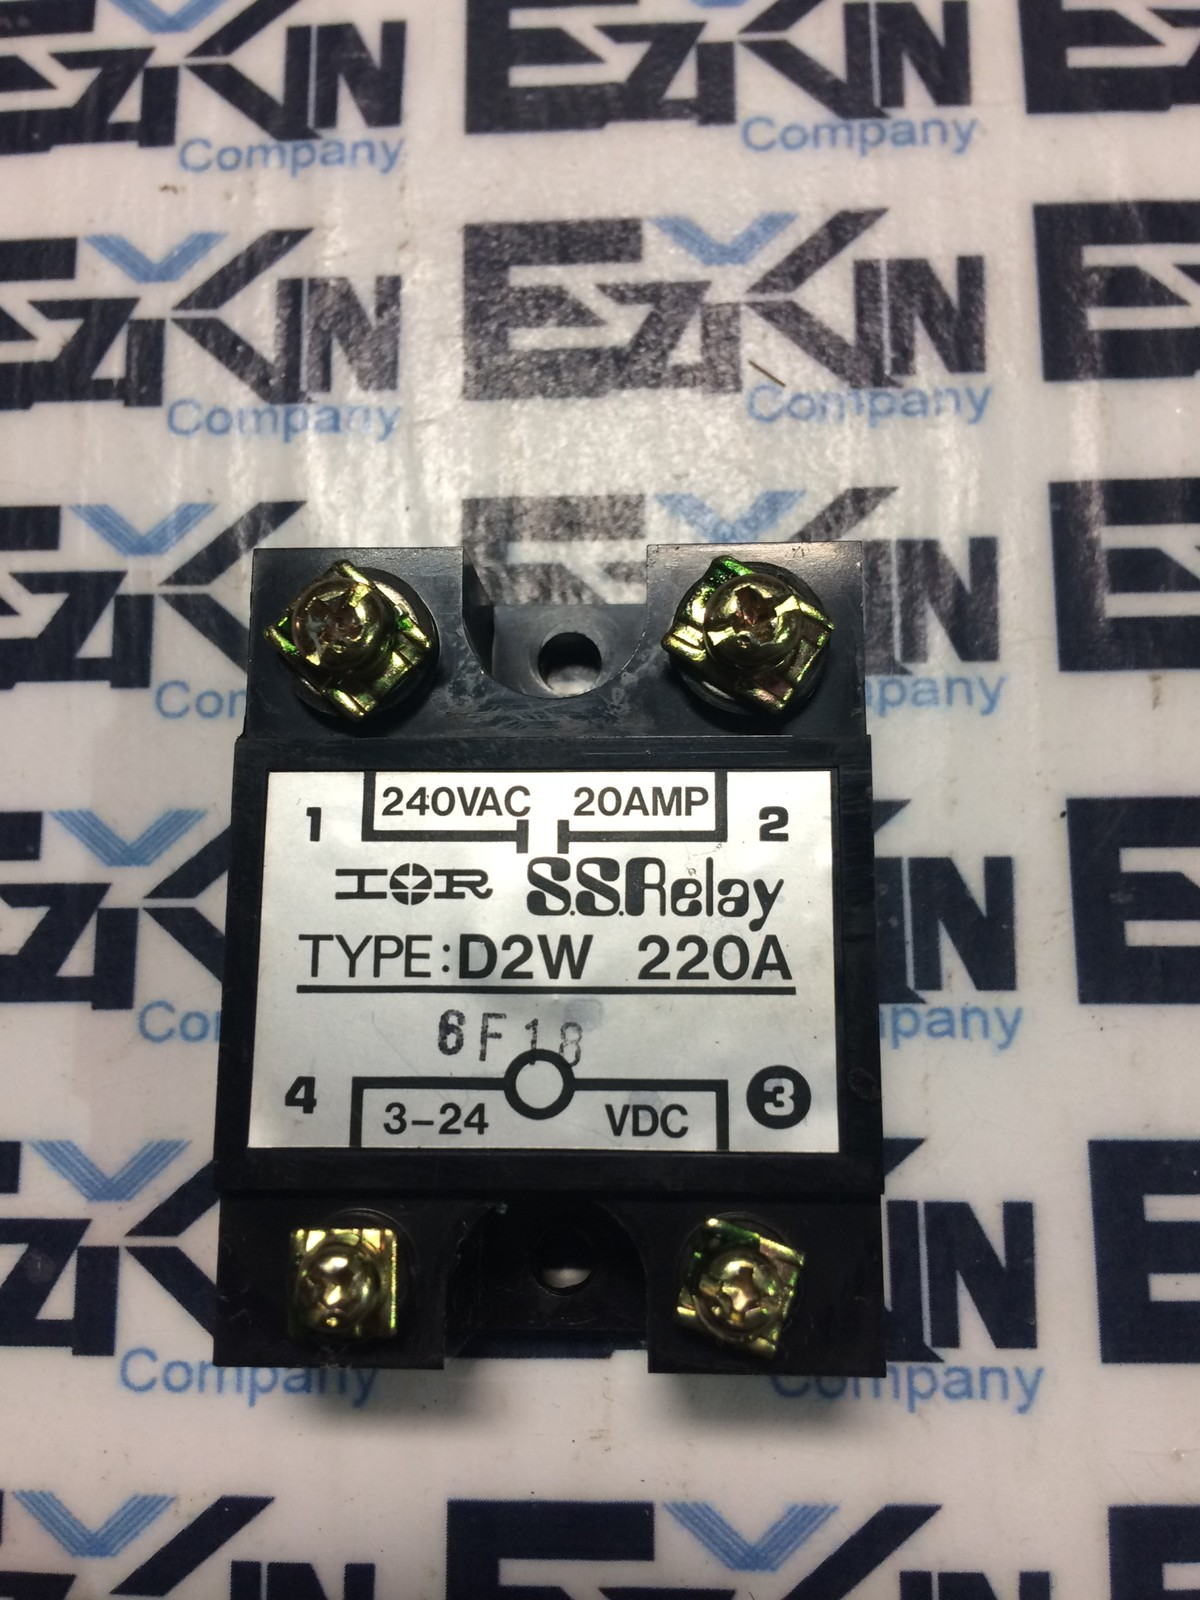 IR D2W 220A SOLID STATE RELAY 240VAC 20AMP 3-24 VDC RELAY D2W